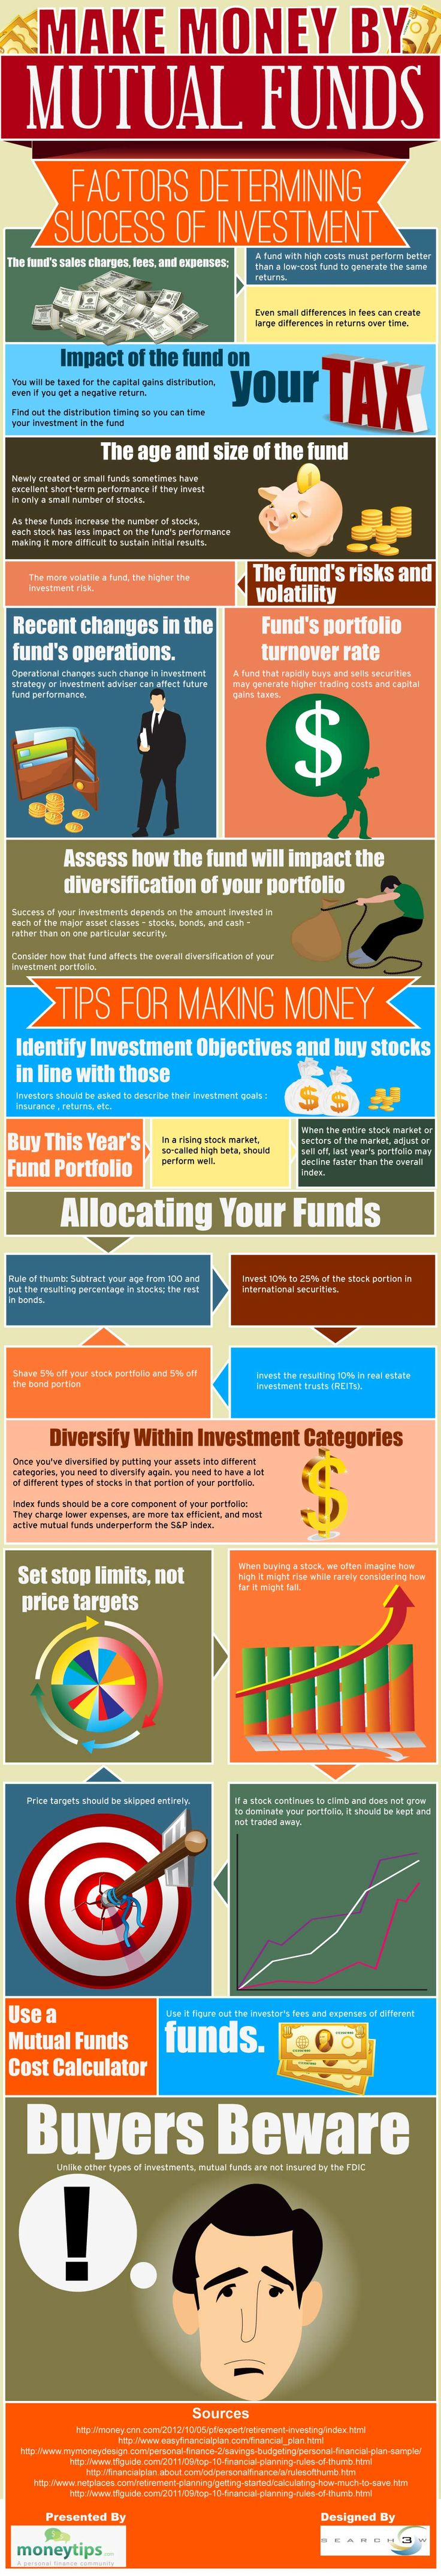 Best mutual funds to own-6383